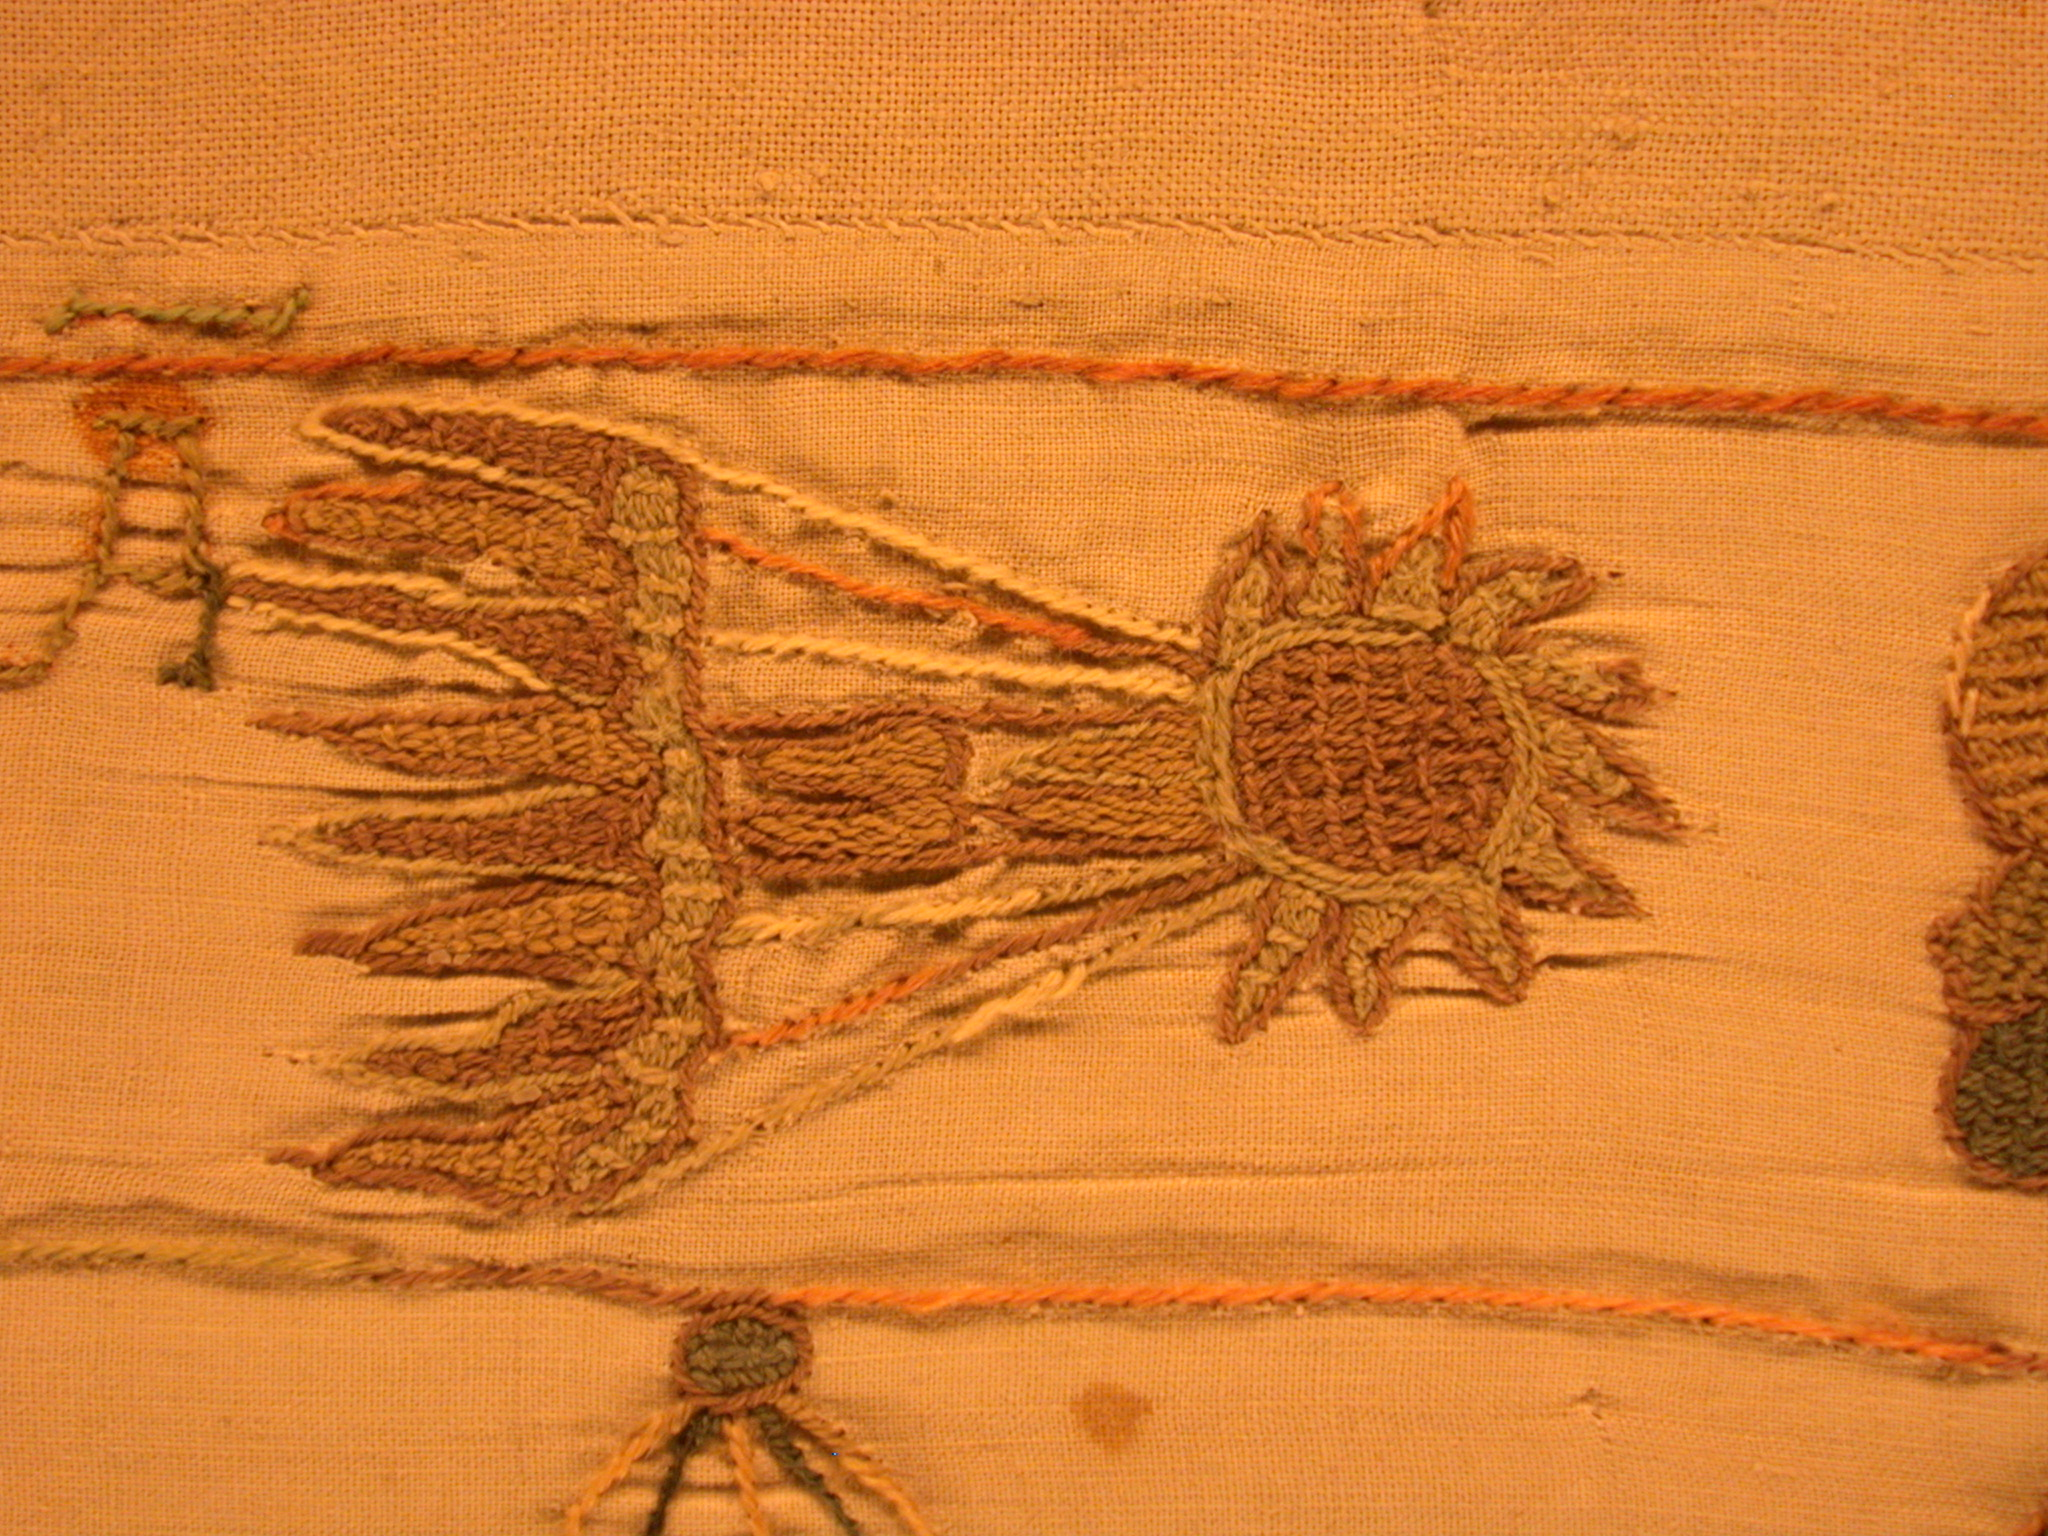 comet tatting yellow orange cloth portent tapestry